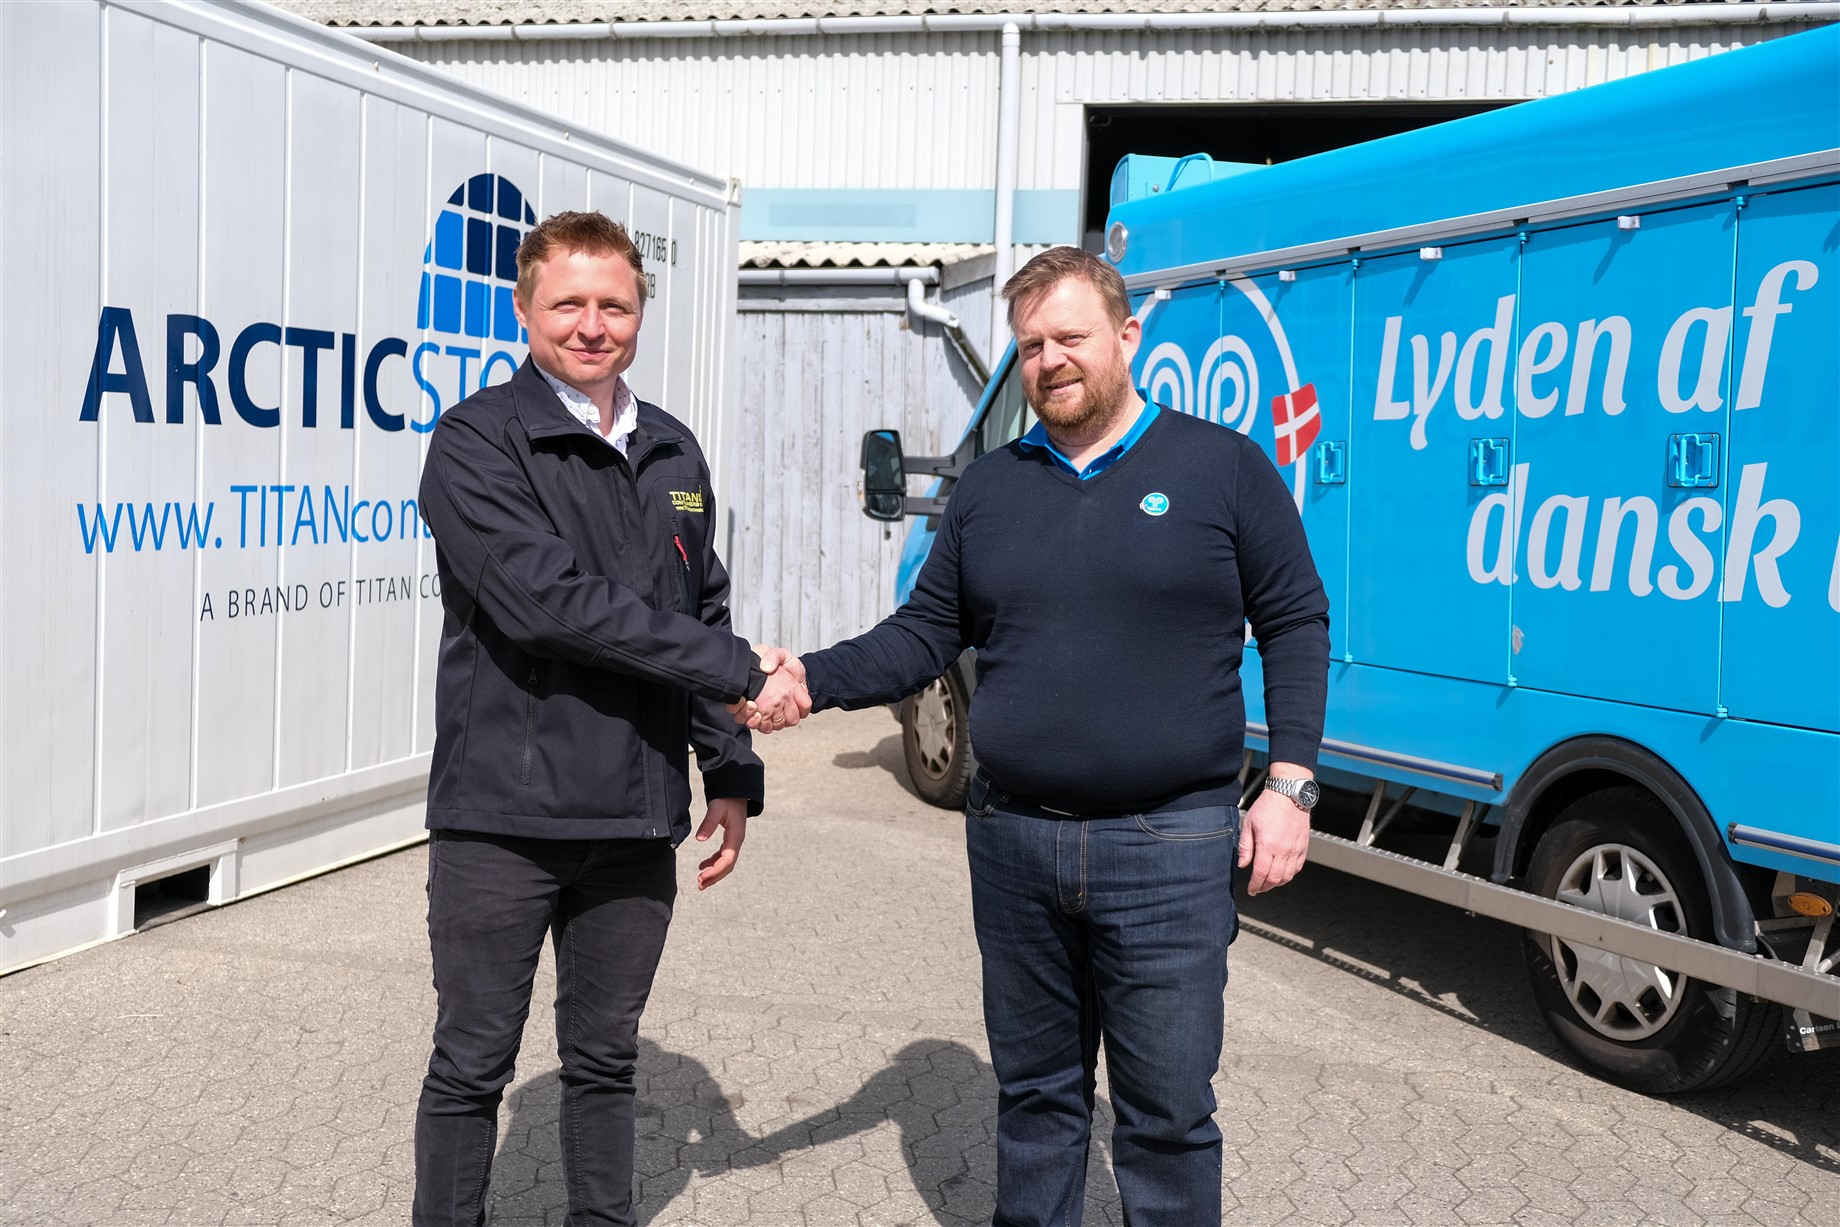 TITAN Containers & Hjem-Is Samarbejde